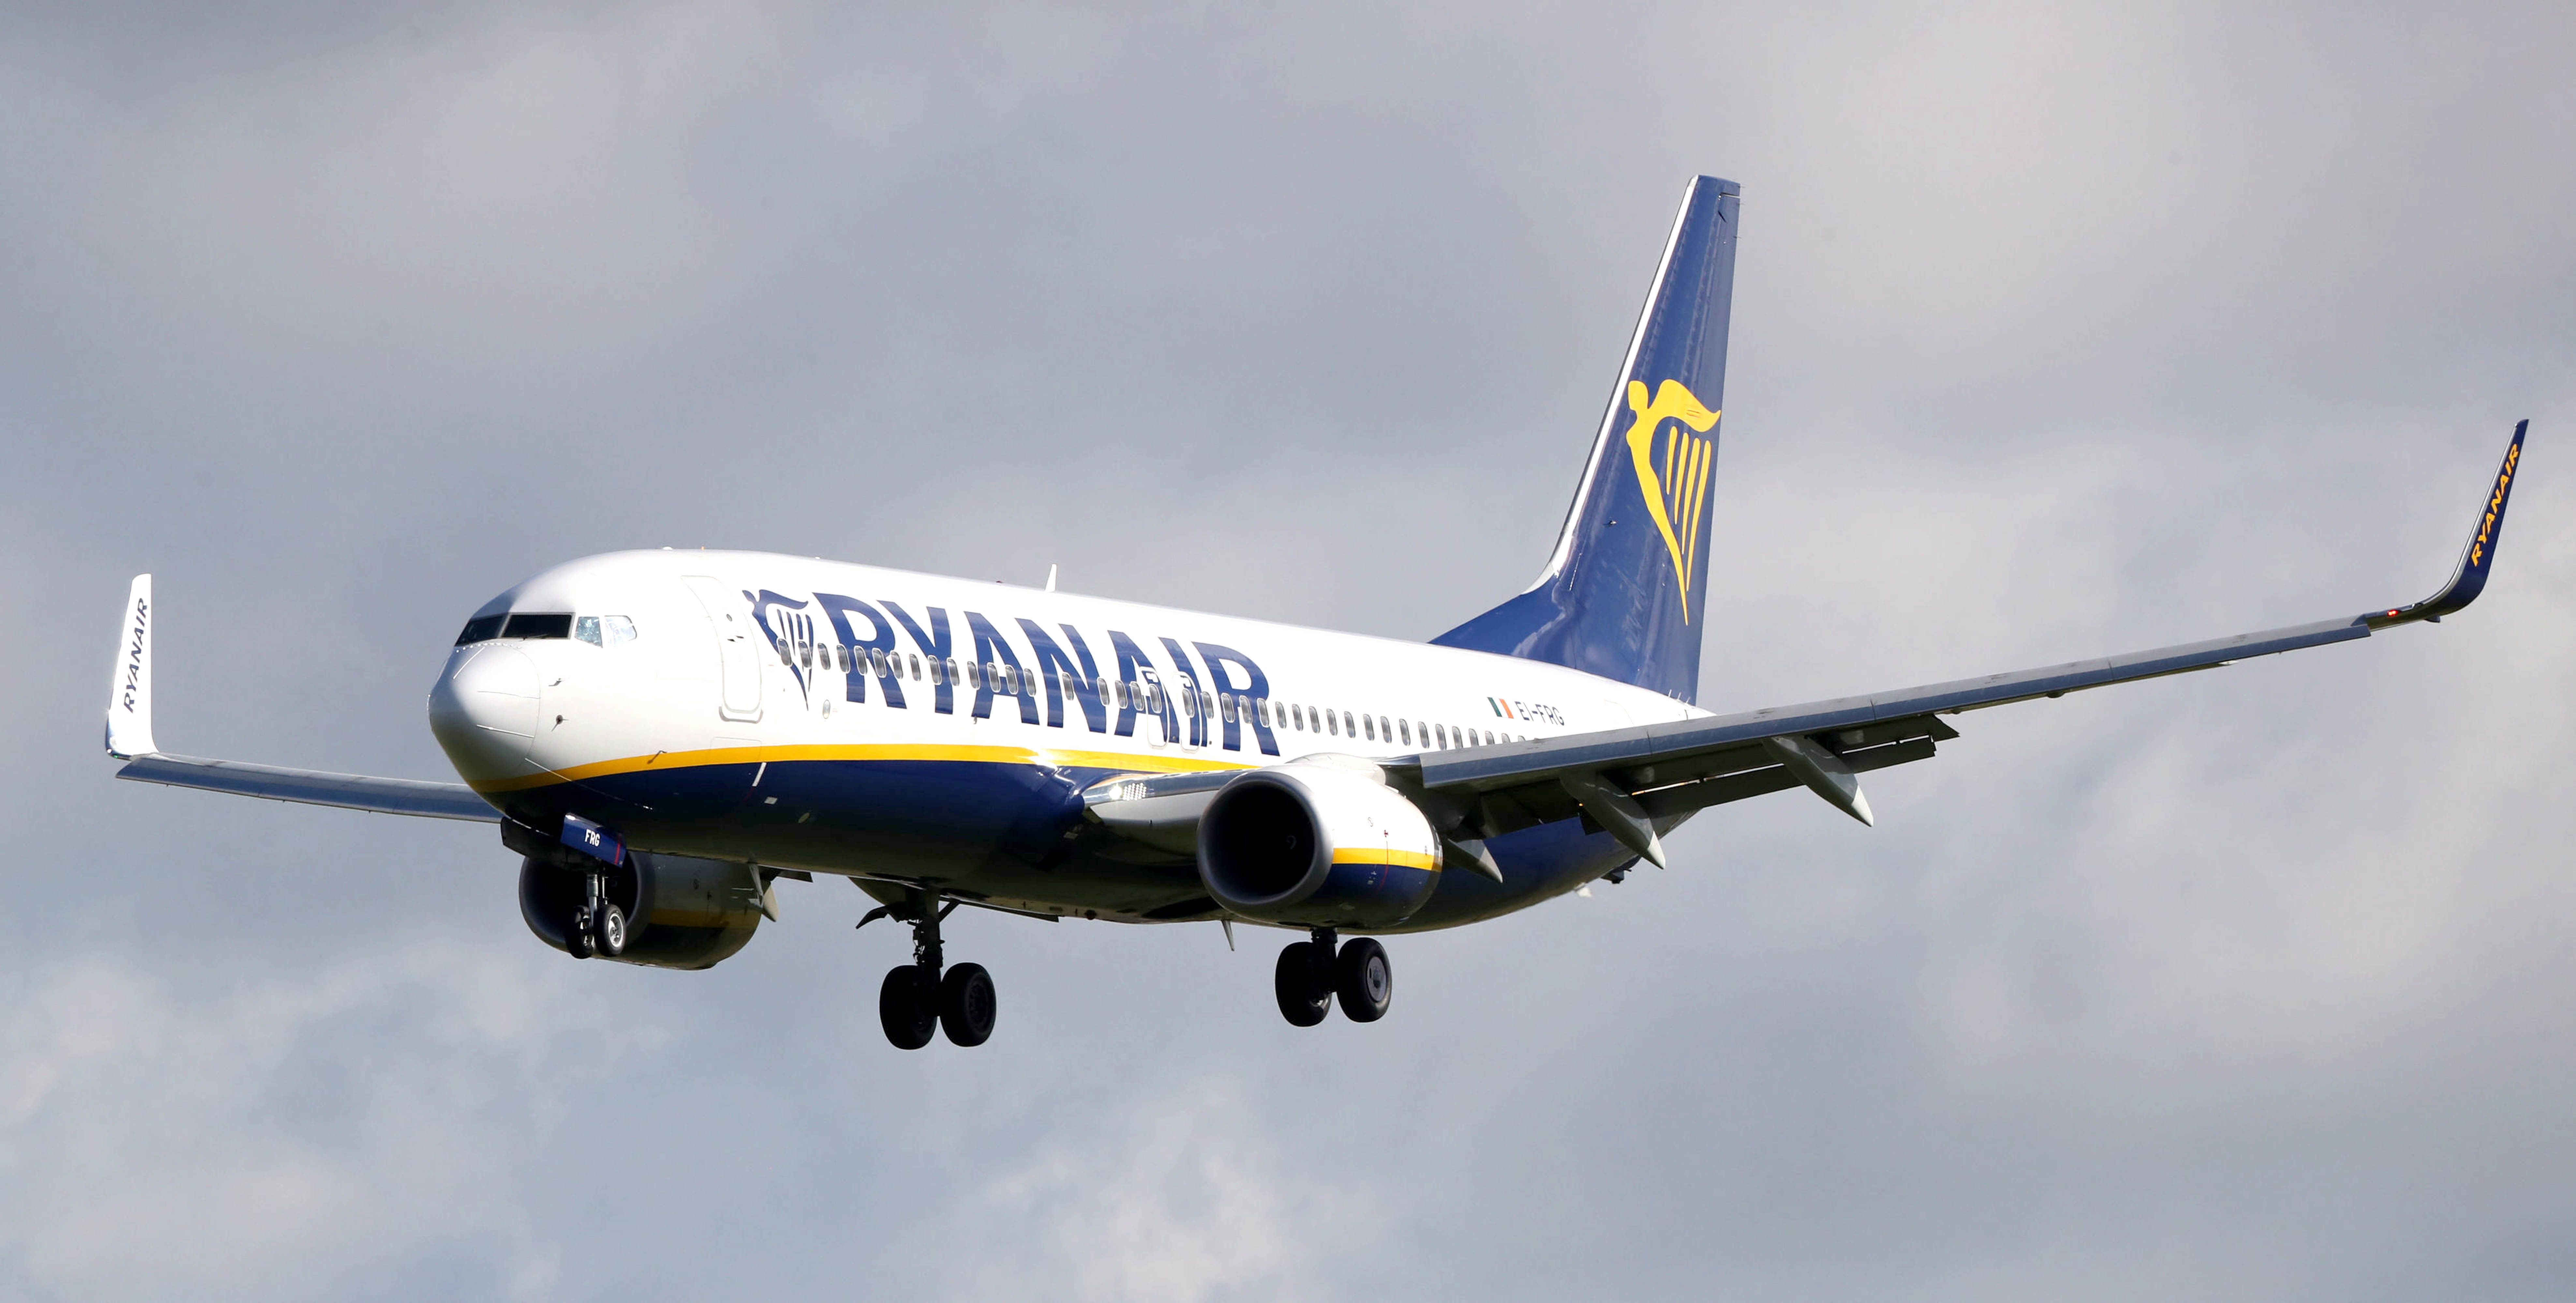 It's Not Been A Good Year For Ryanair, Now Voted Worst For Disruptive